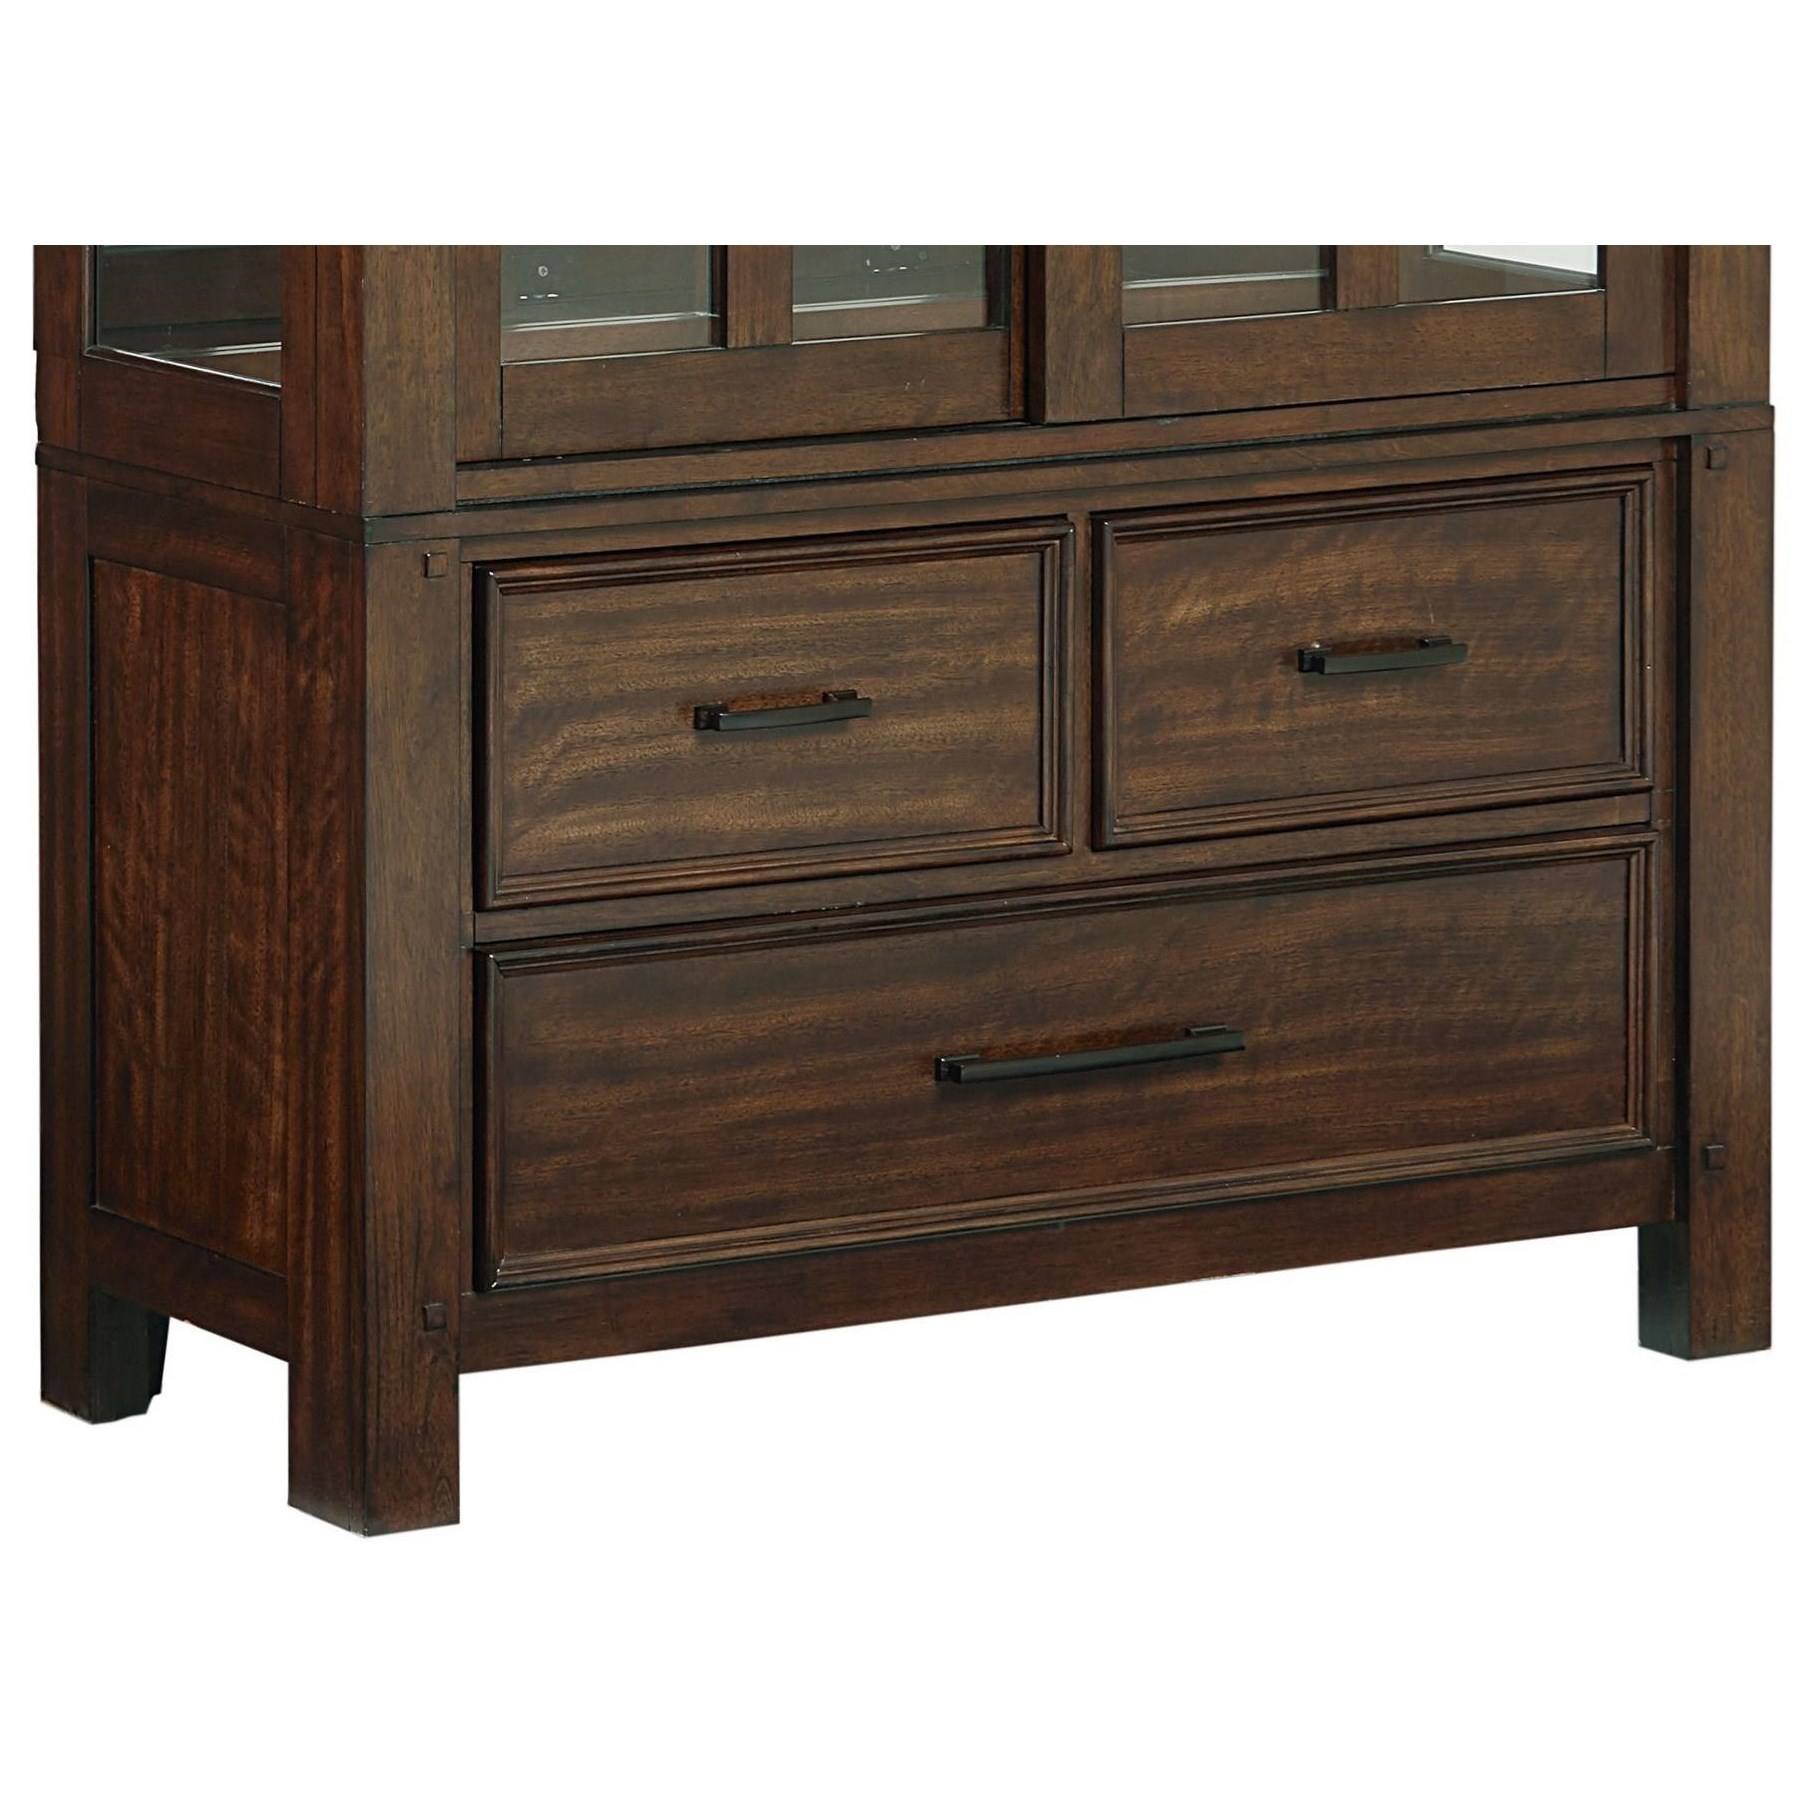 Standard Furniture Cameron Buffet  - Item Number: 14308